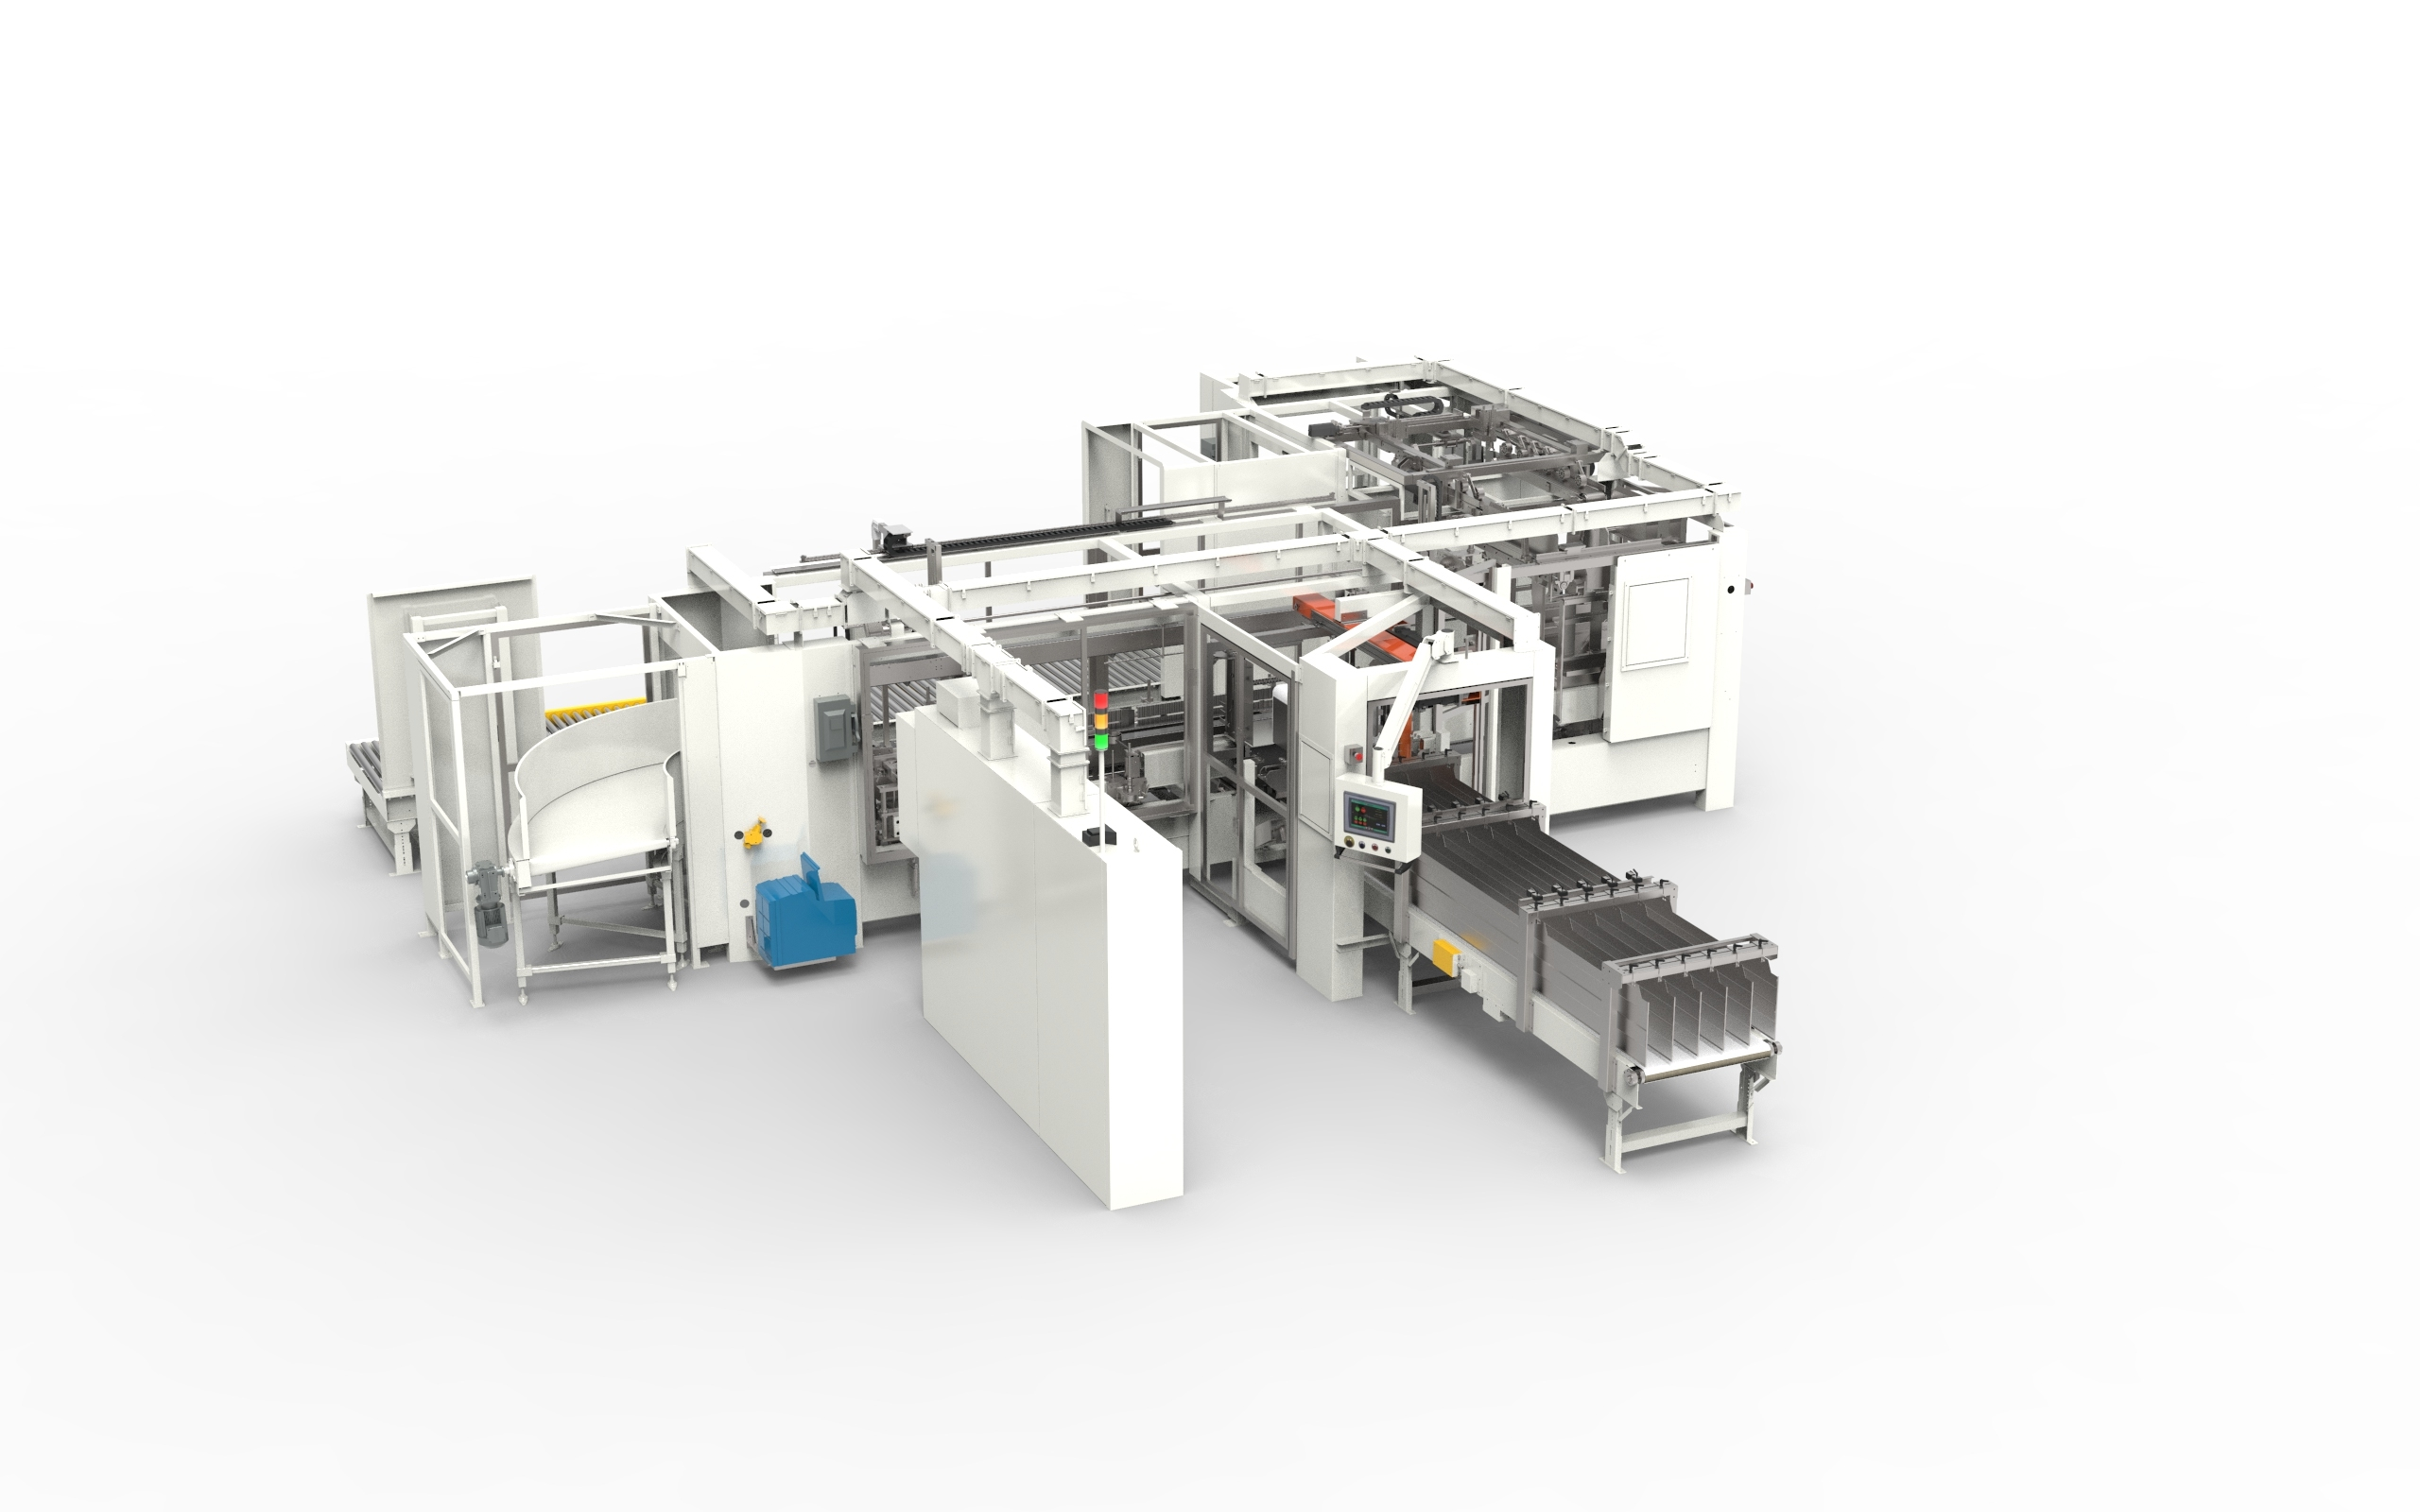 3600 Large Case and Tray Packer - Case & Tray Packing Equipment